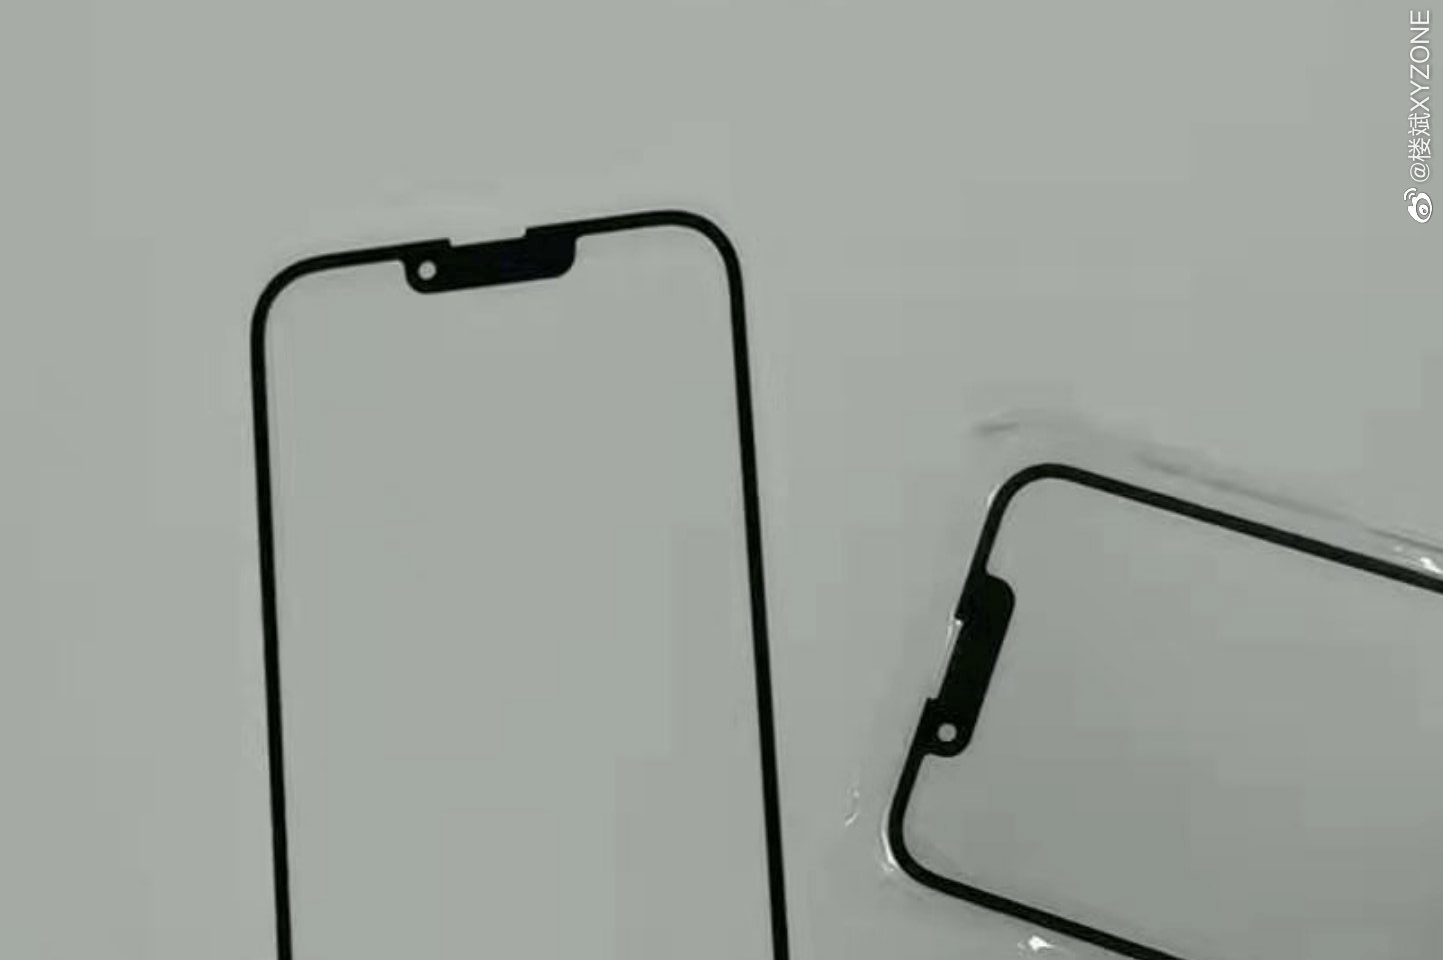 More evidence suggests that the iPhone 13 has bigger notch ears